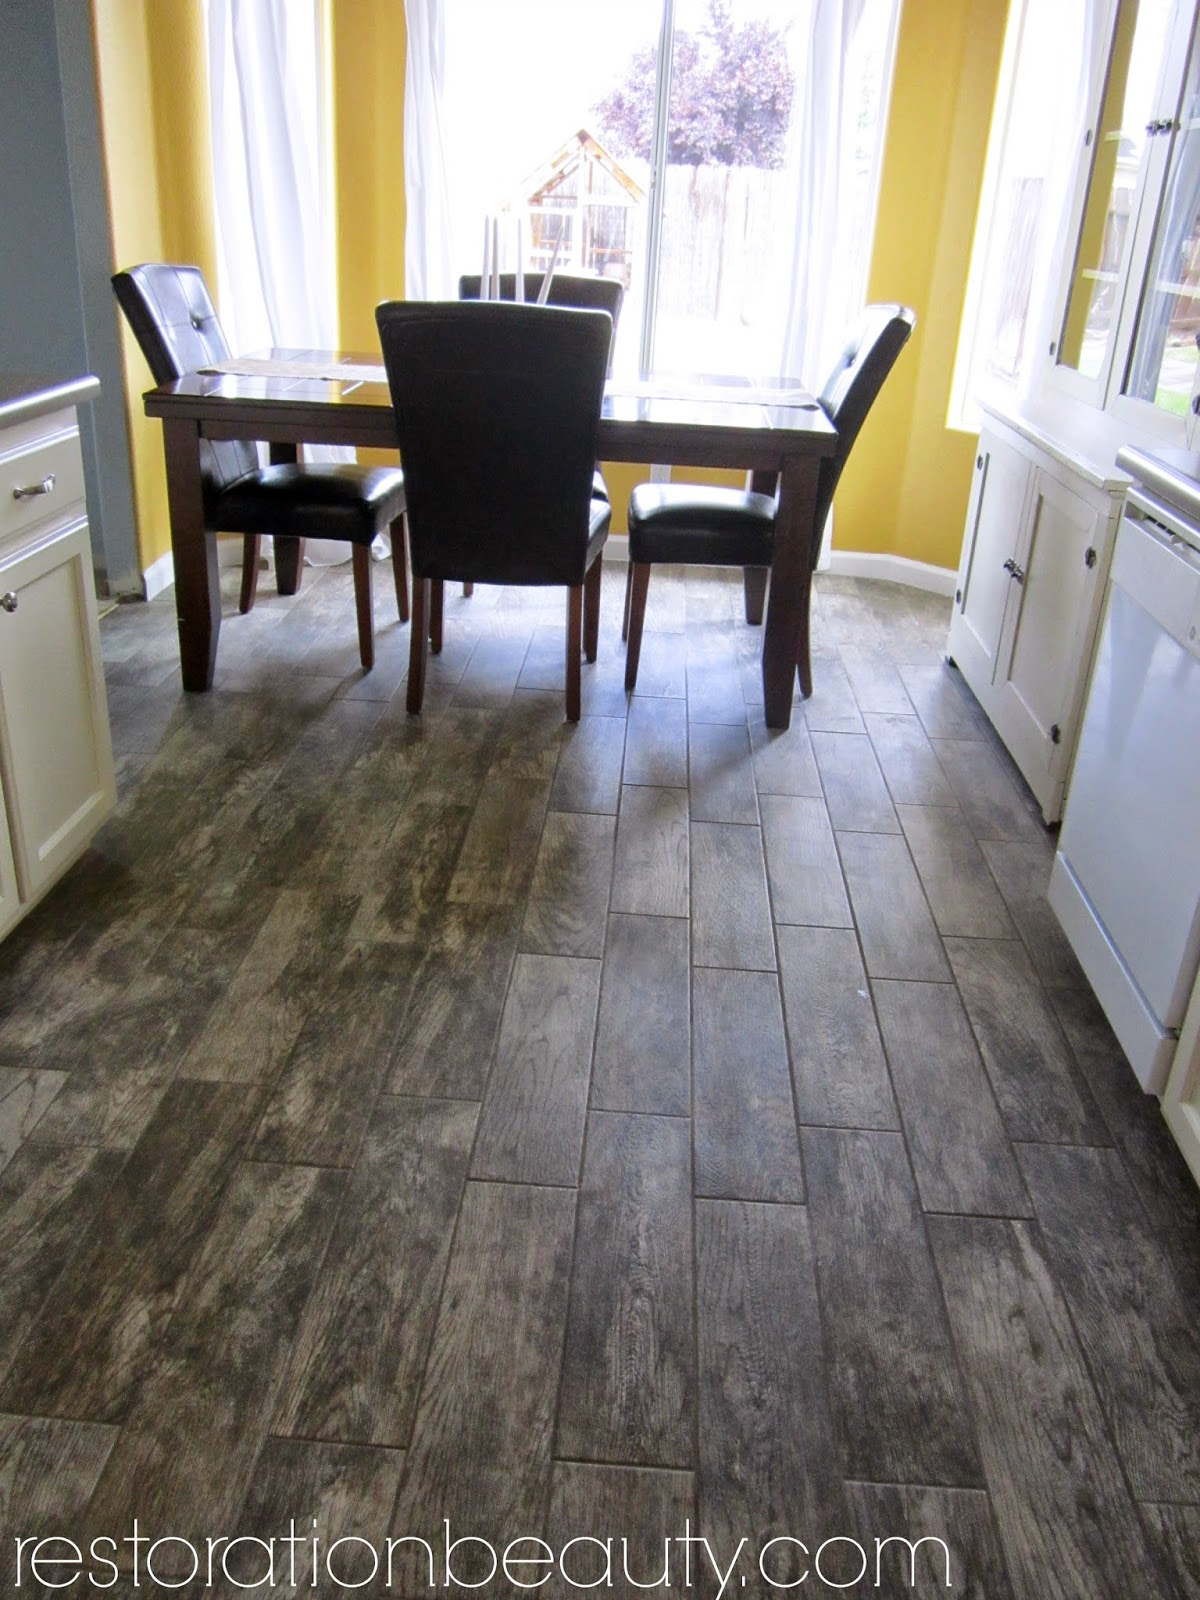 Restoration Beauty Faux Wood Tile Flooring In The Kitchen